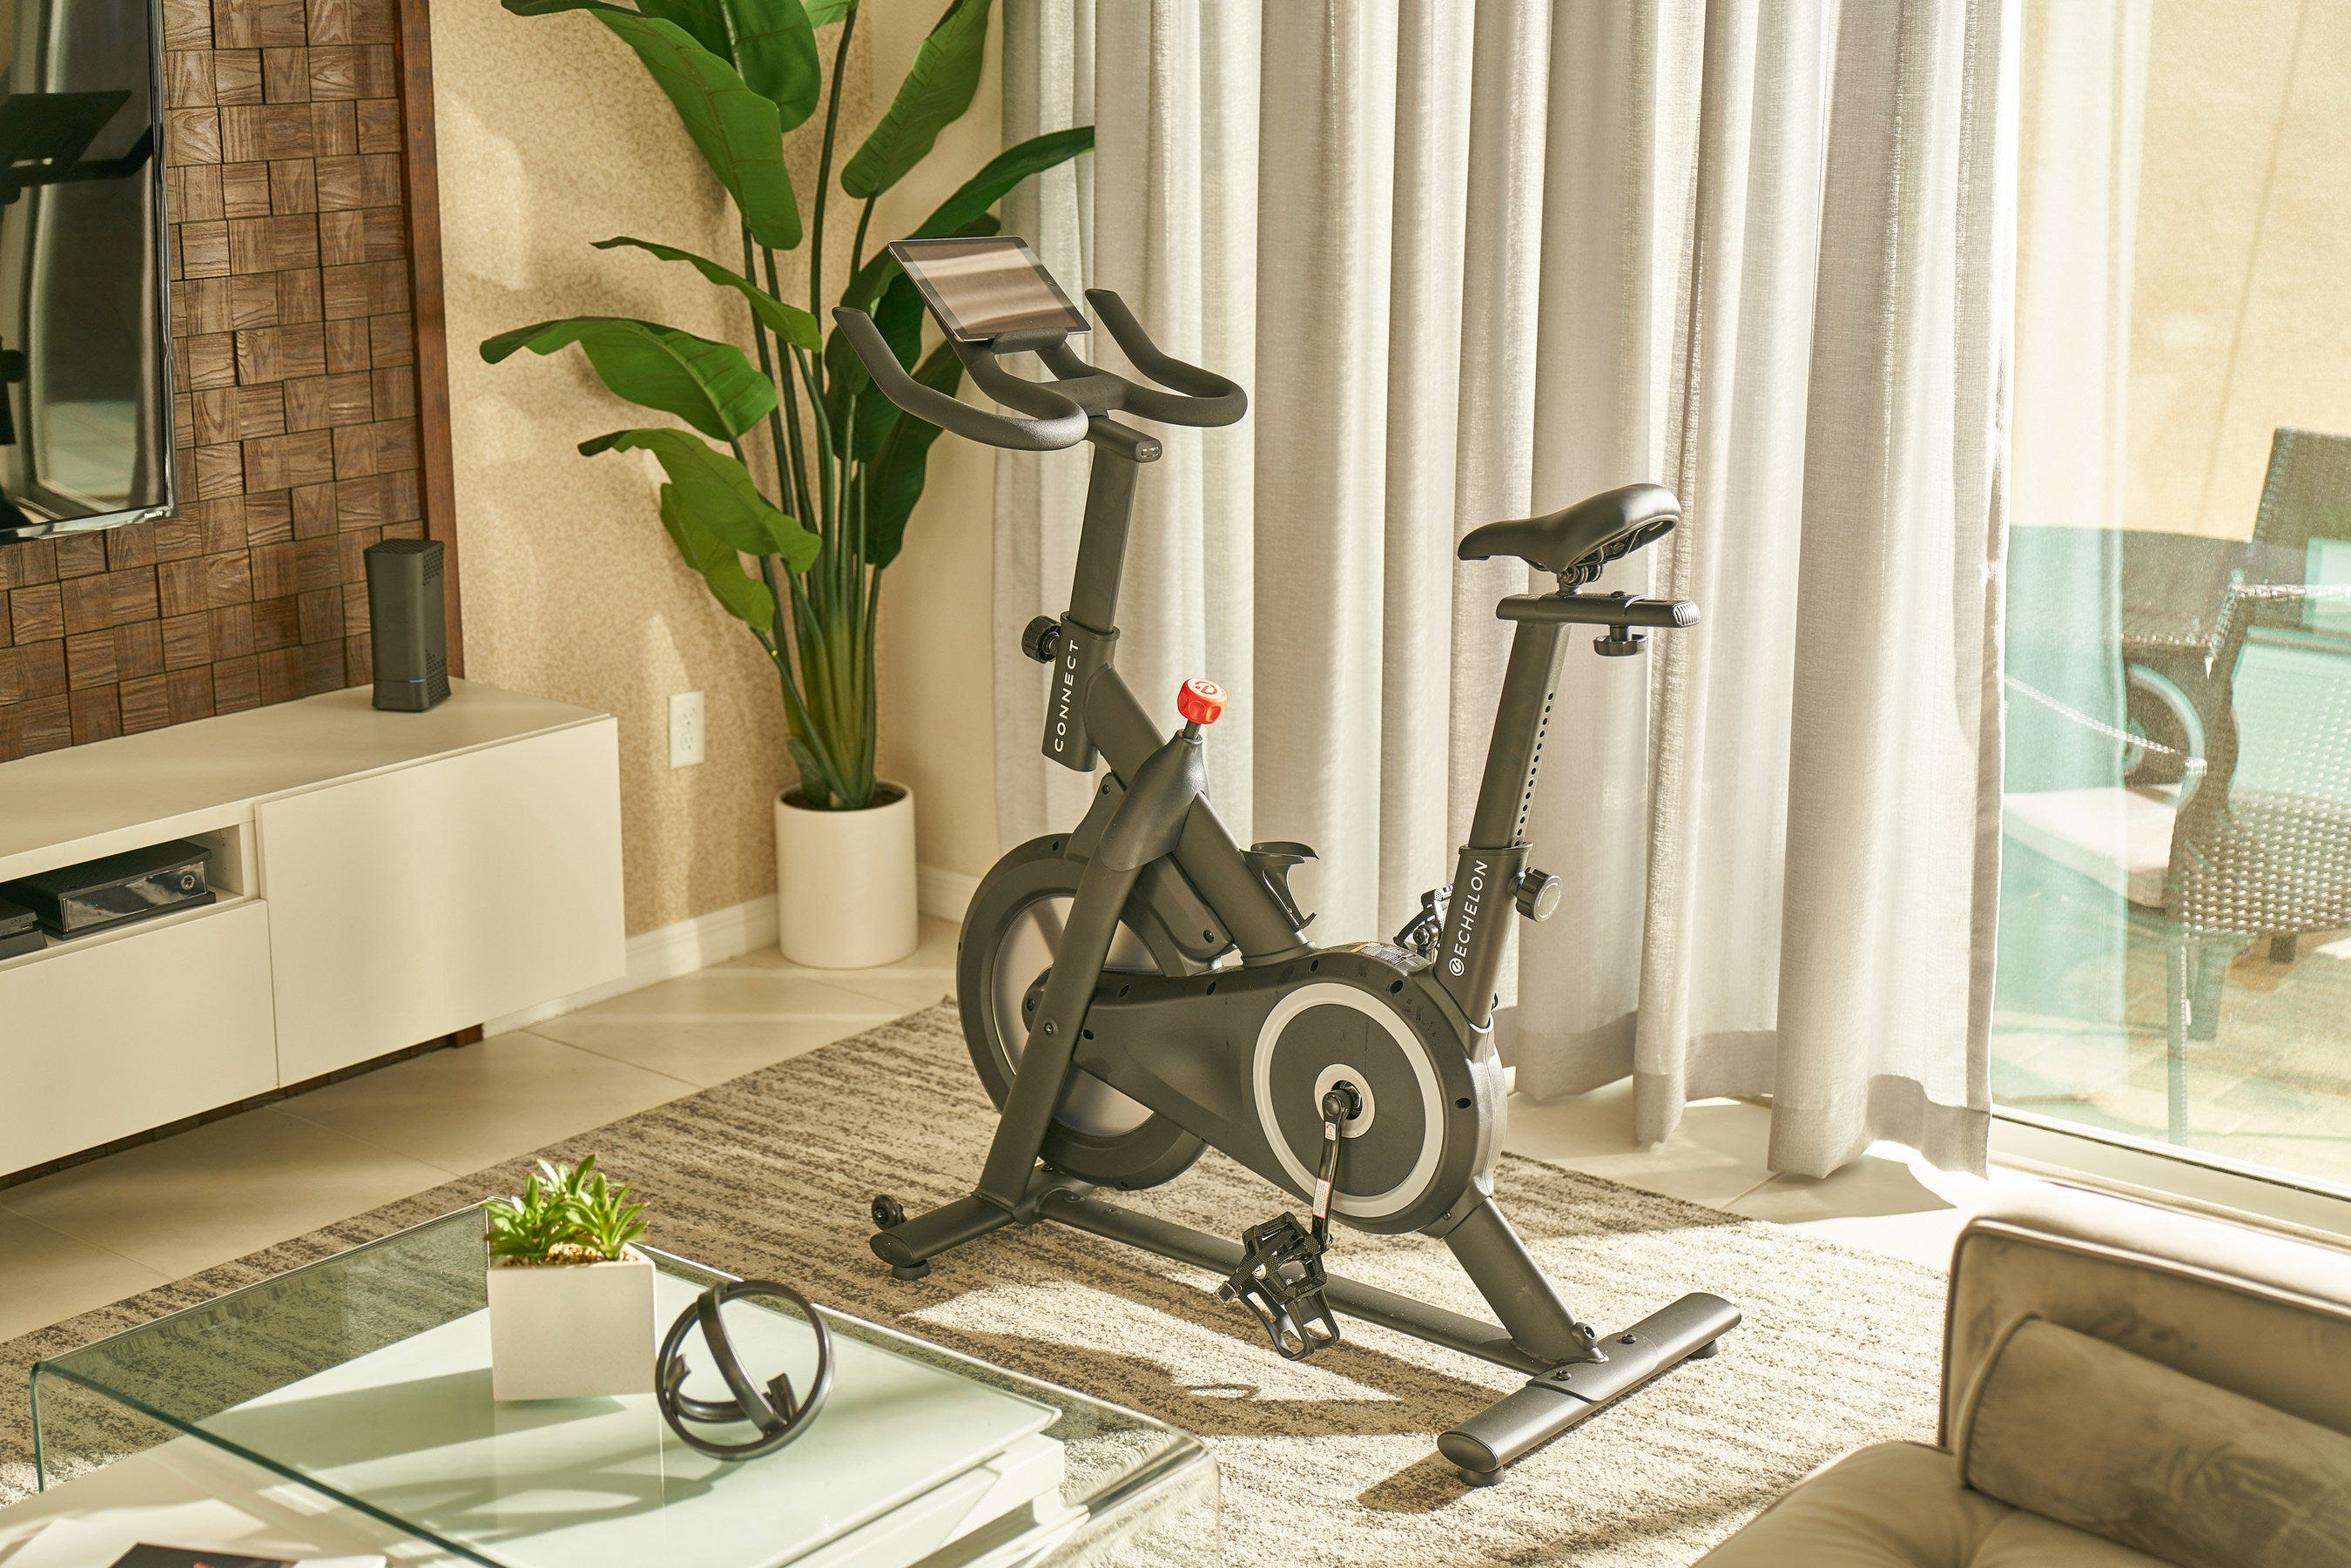 Amazon Takes On Peloton With New Connected Prime Bike